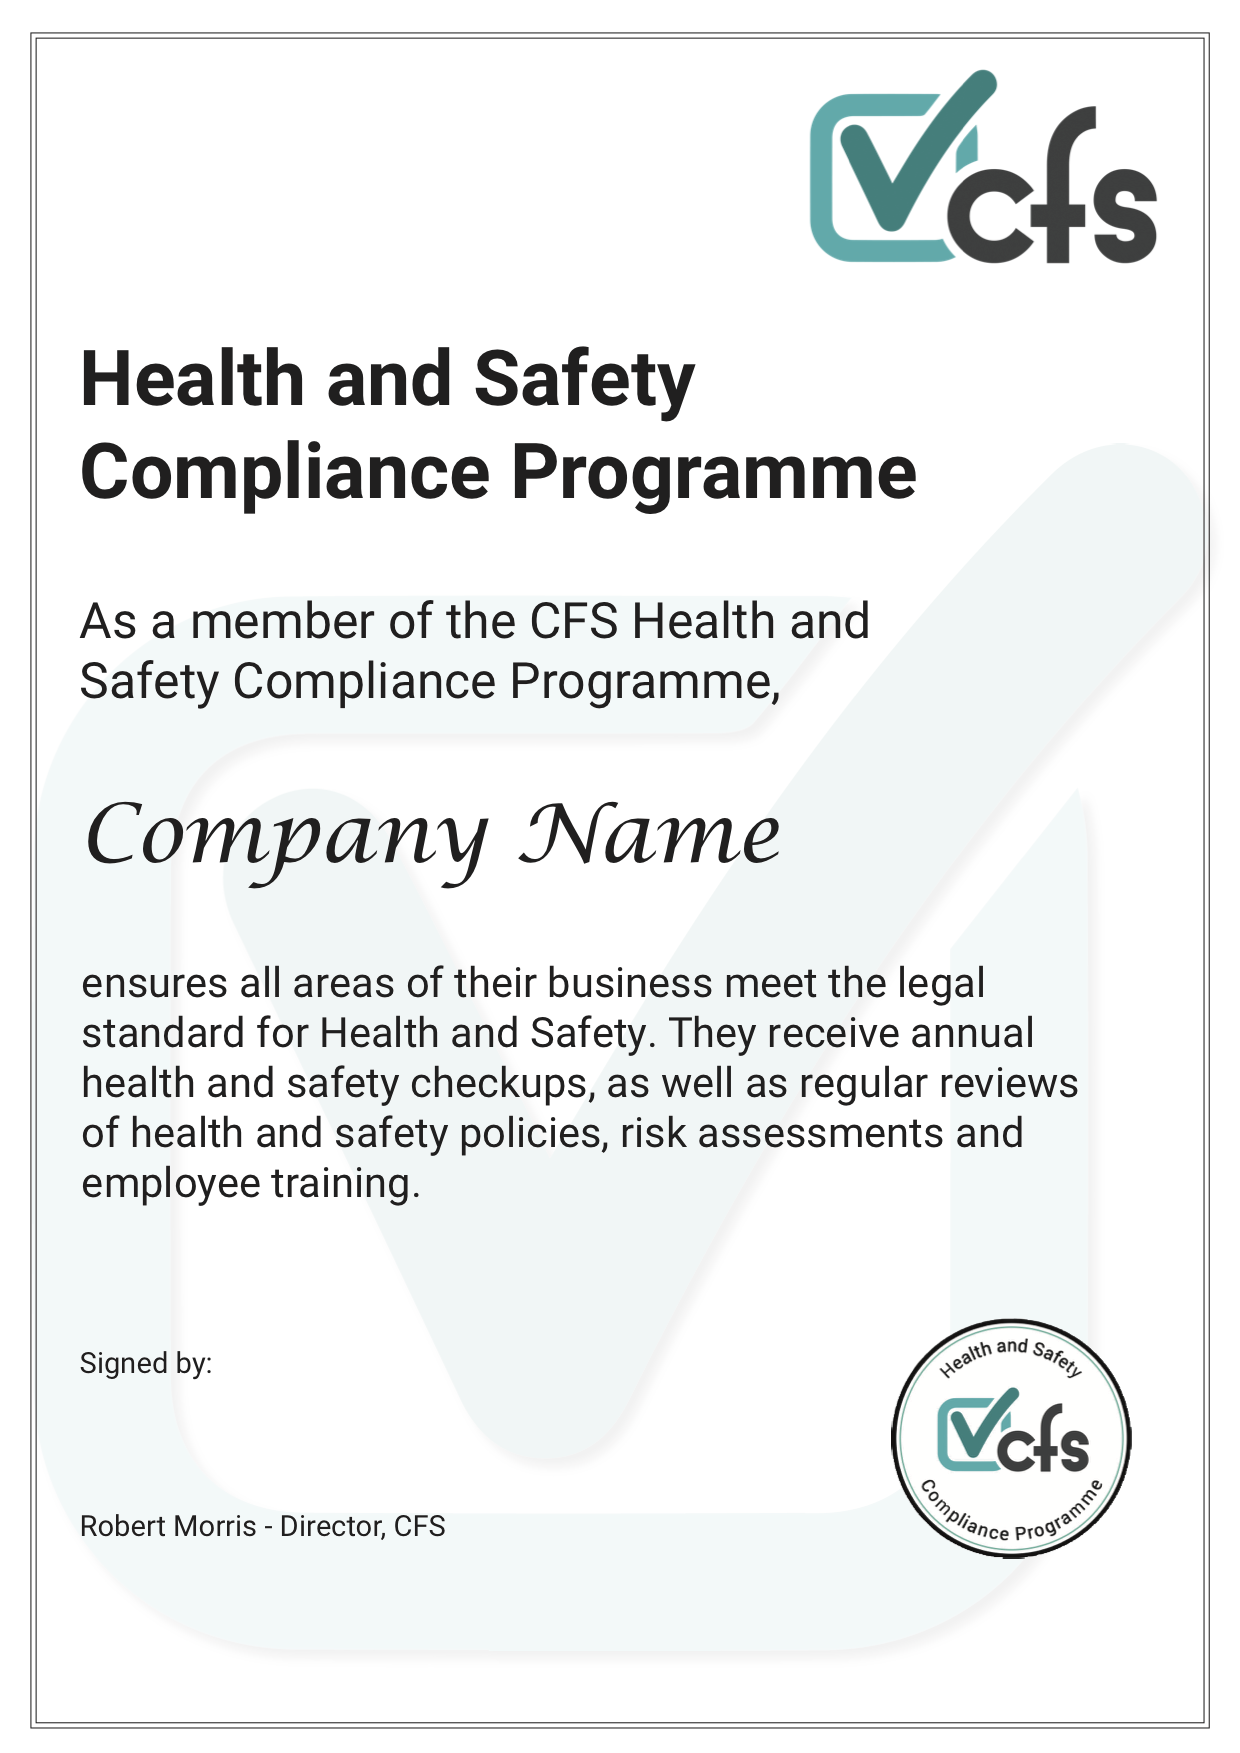 health and safety certificate template - health and safety certificate complete food safety ltd